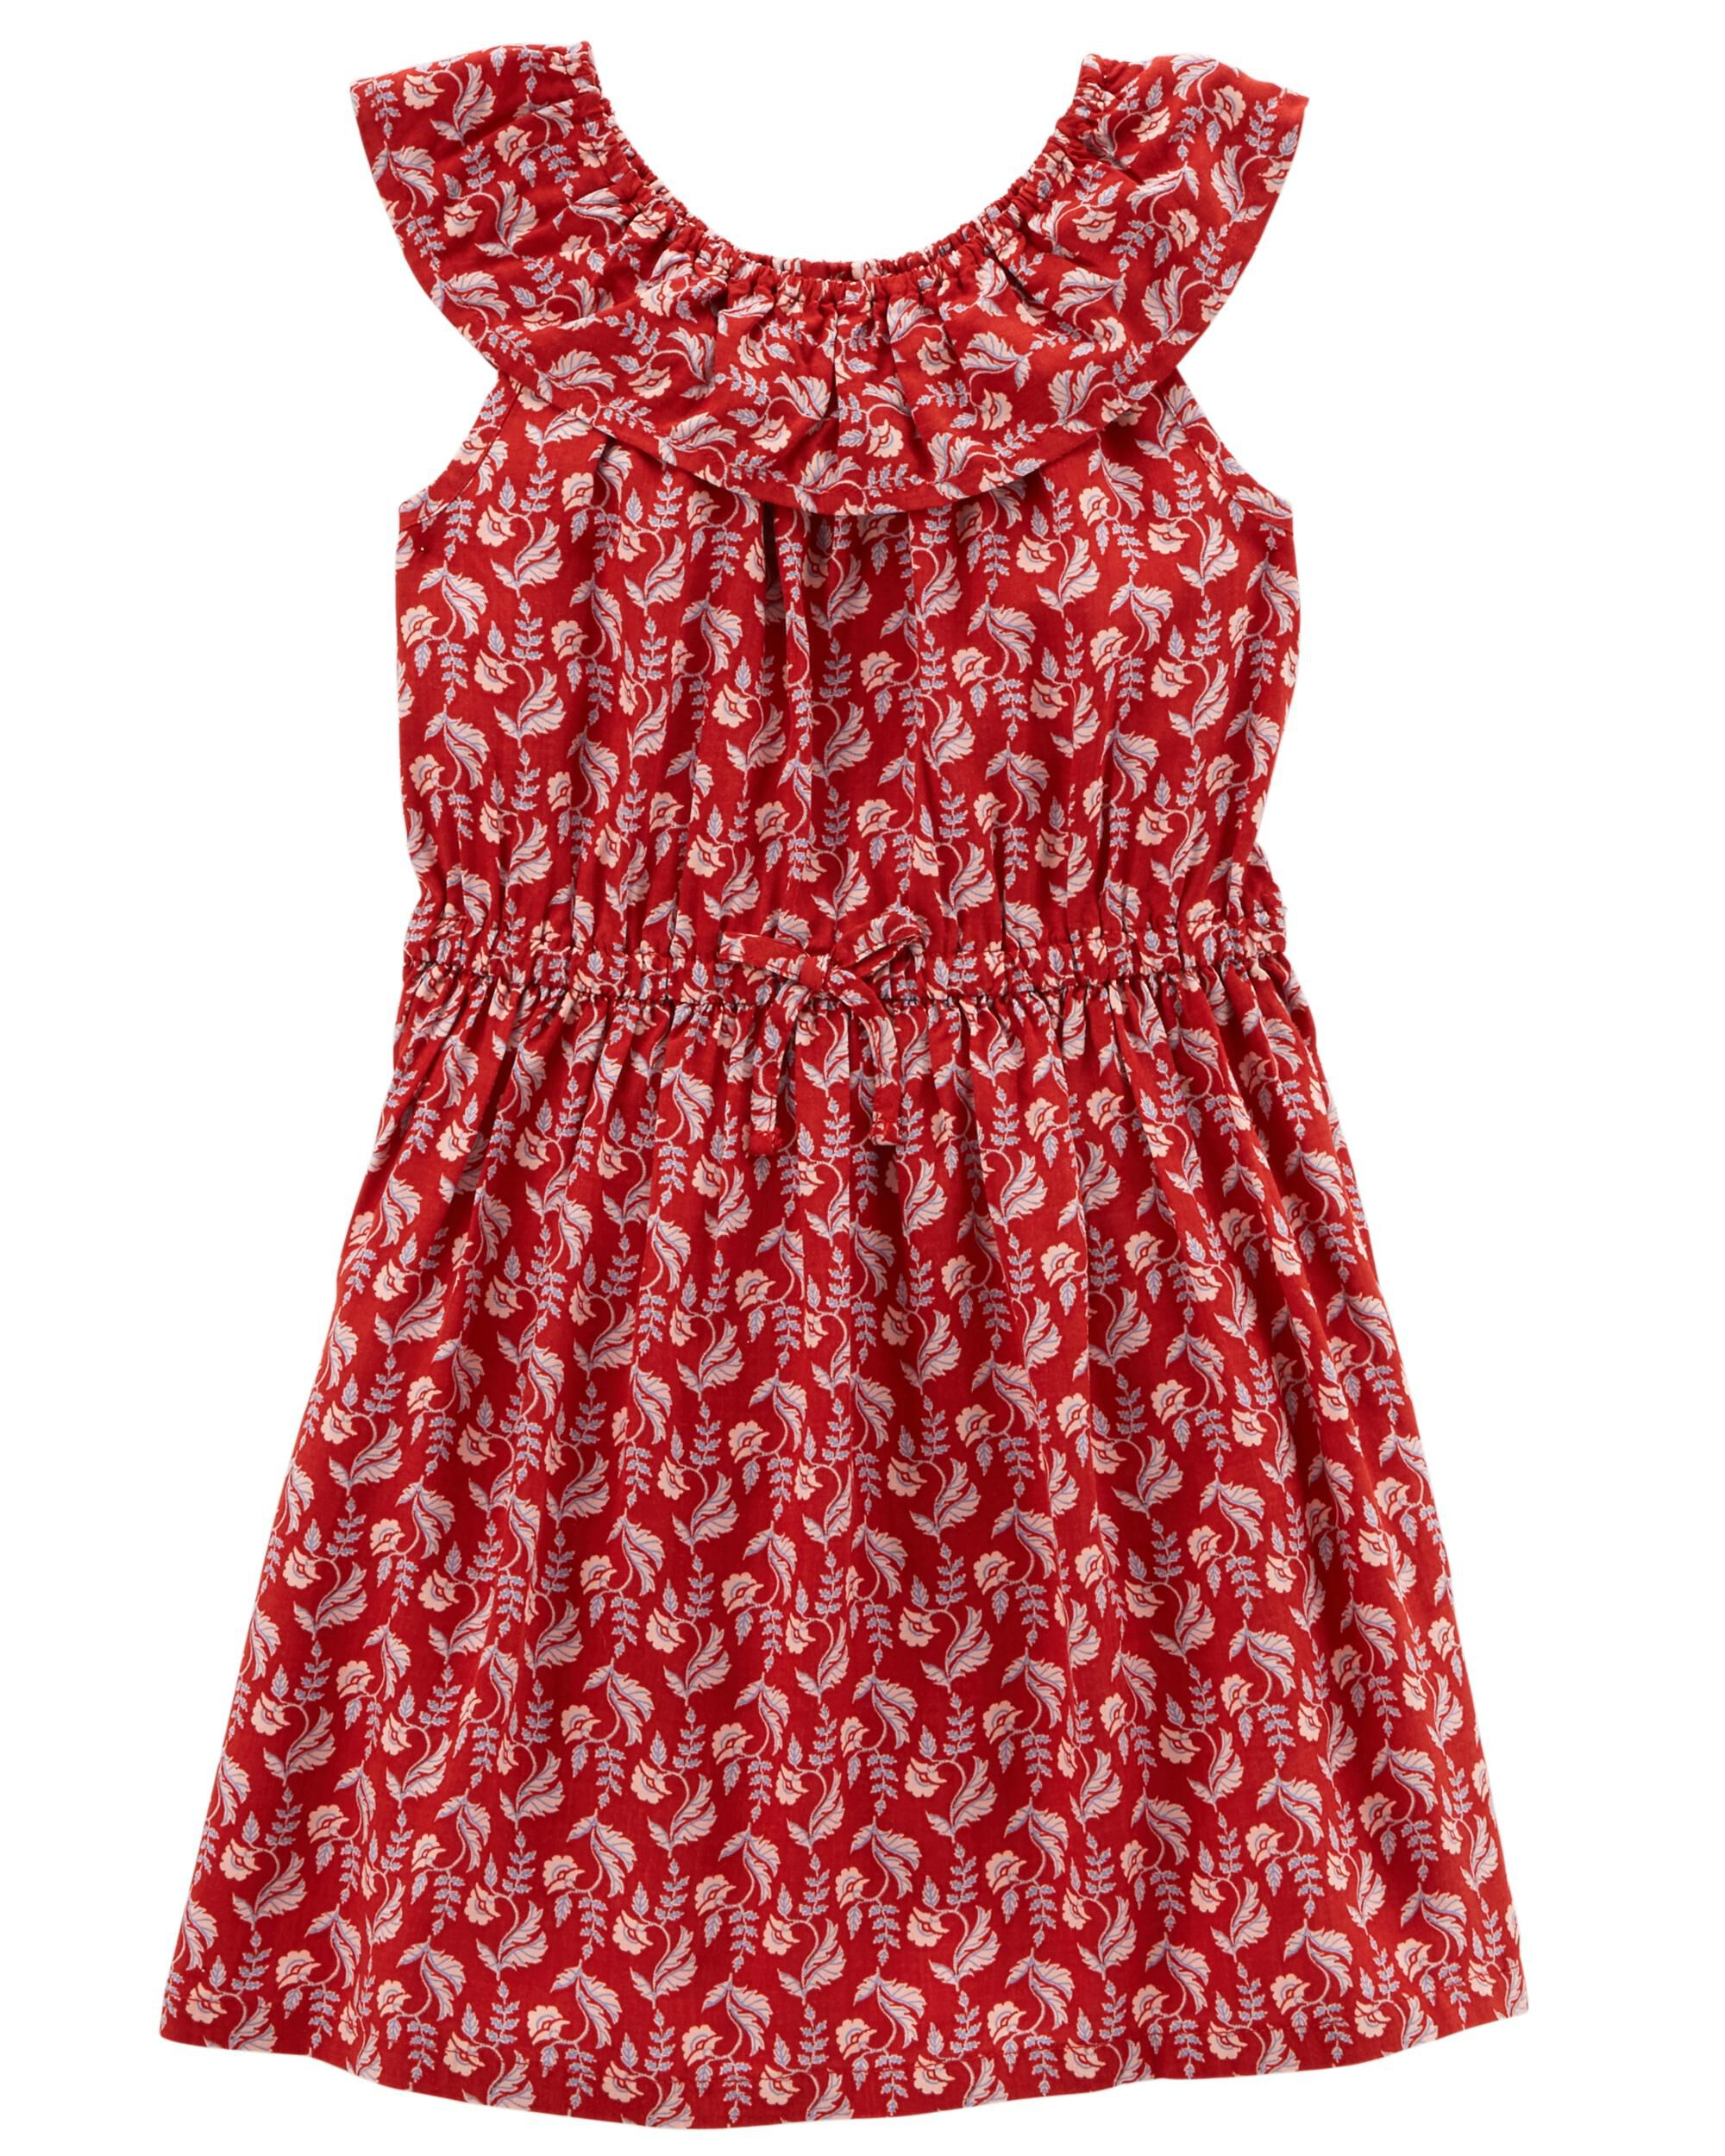 Girly Toddler Dresses